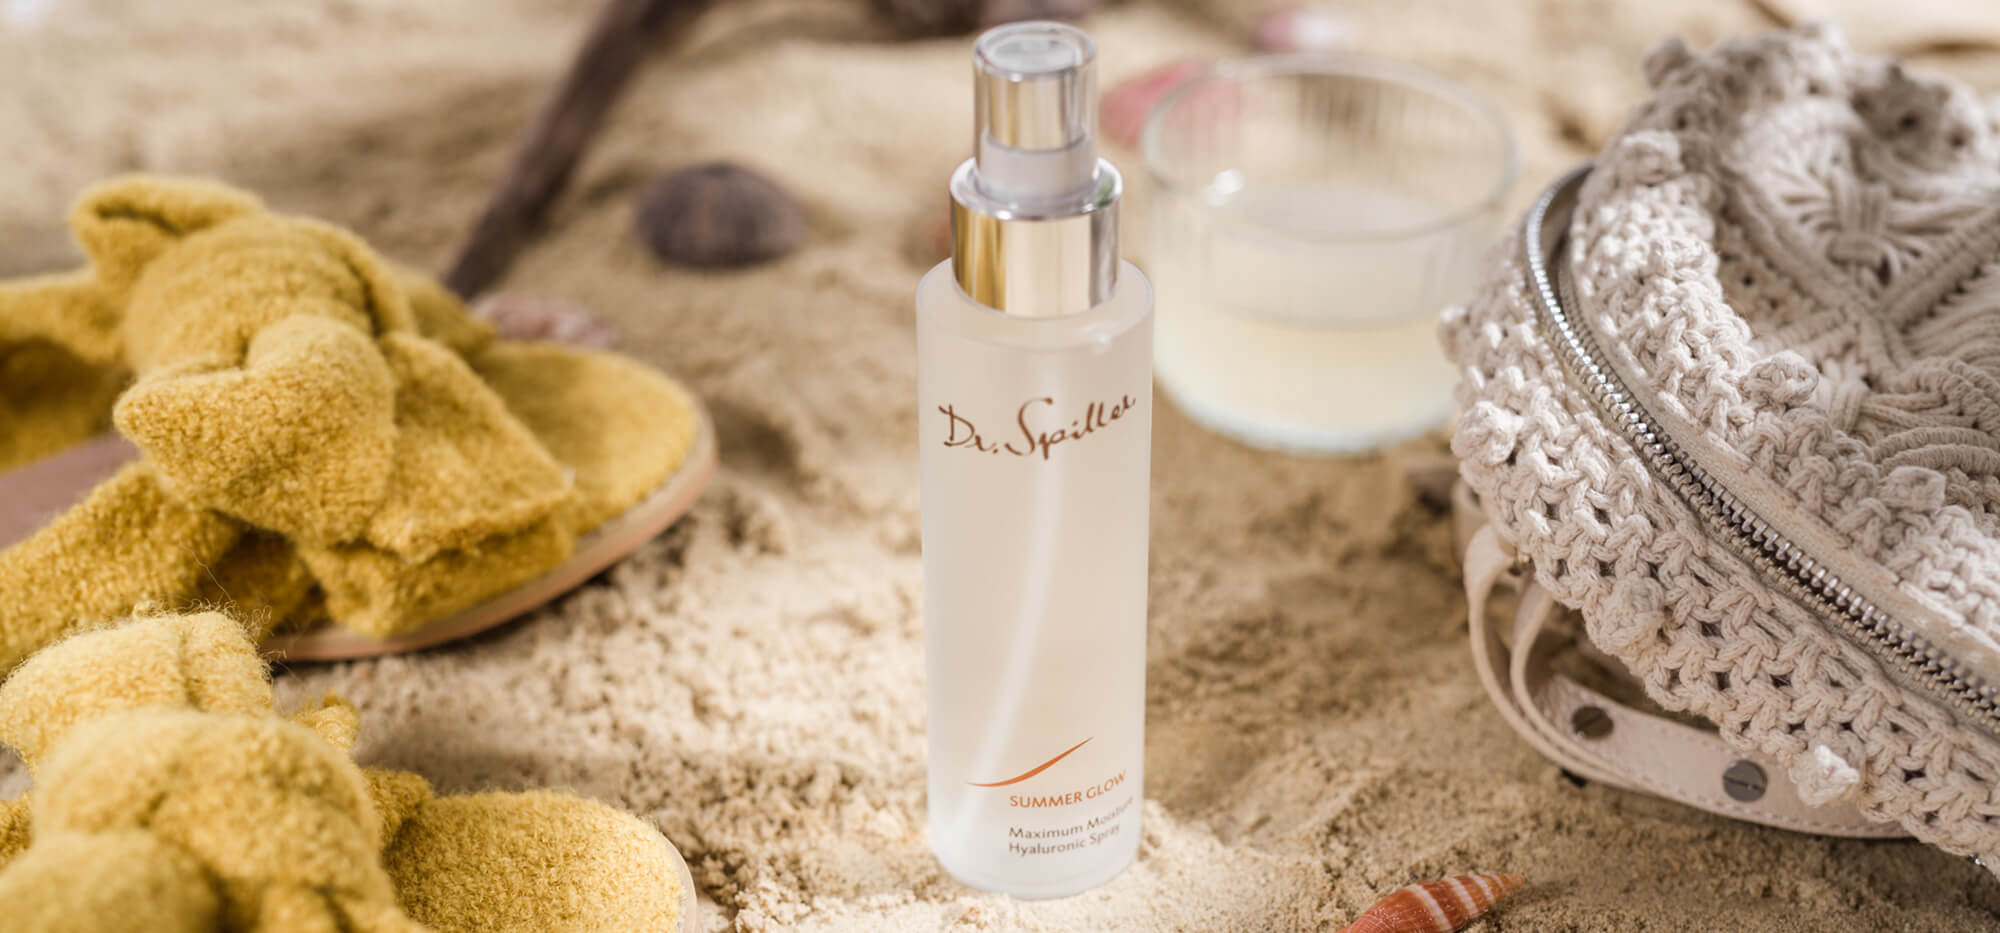 drspiller_news_summer_glow_maximum_moisture_hyaluronic_spray sun care summer glow –  the shine protector - drspiller news summer glow maximum moisture hyaluronic spray - Sun Care SUMMER GLOW –  The Shine Protector